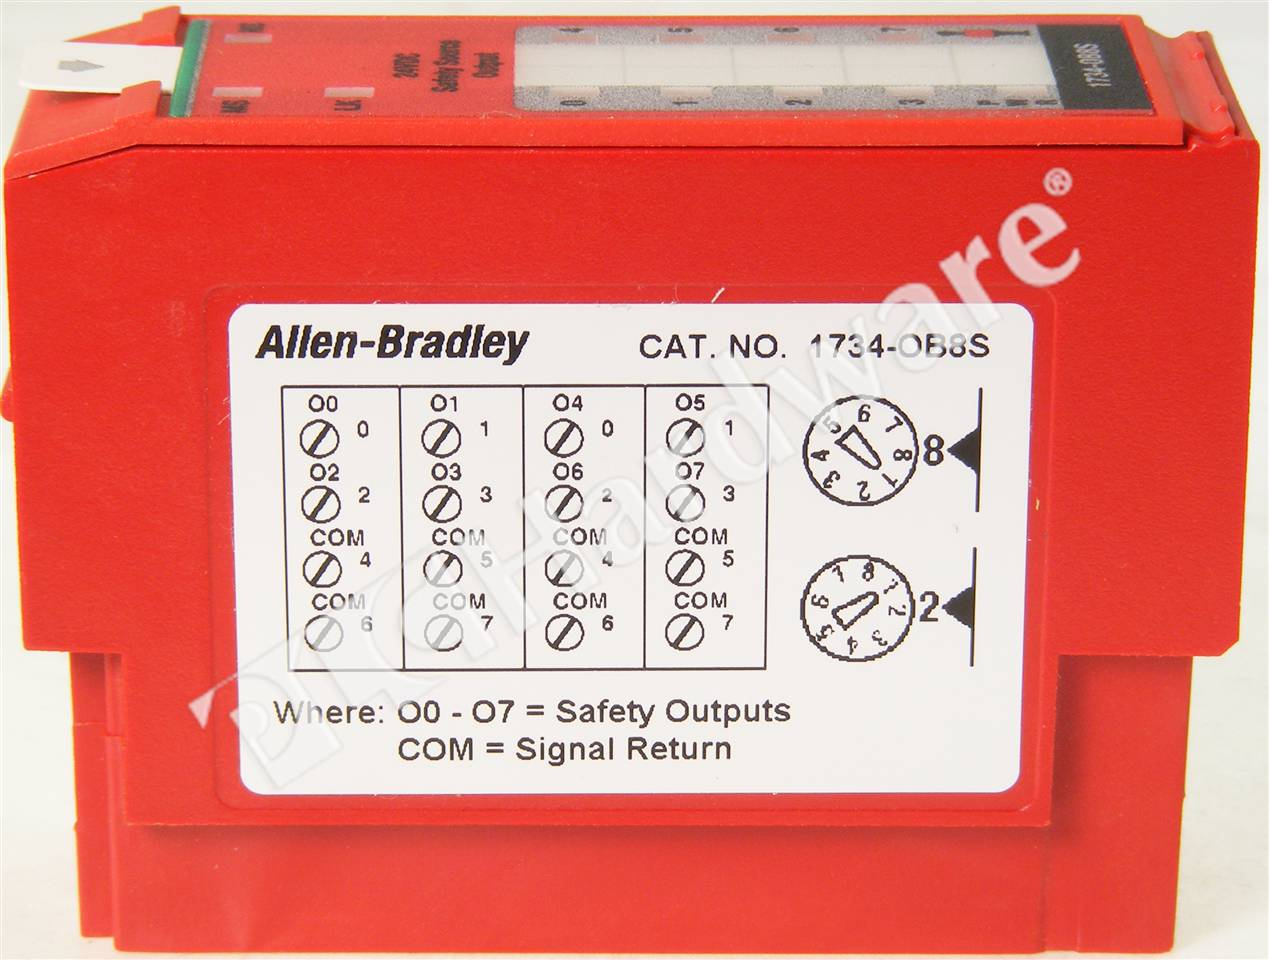 RA 1734 OB8S A UPP 3_b plc hardware allen bradley 1734 ob8s series a, used in a plch 1734 ib8s wiring diagram at crackthecode.co